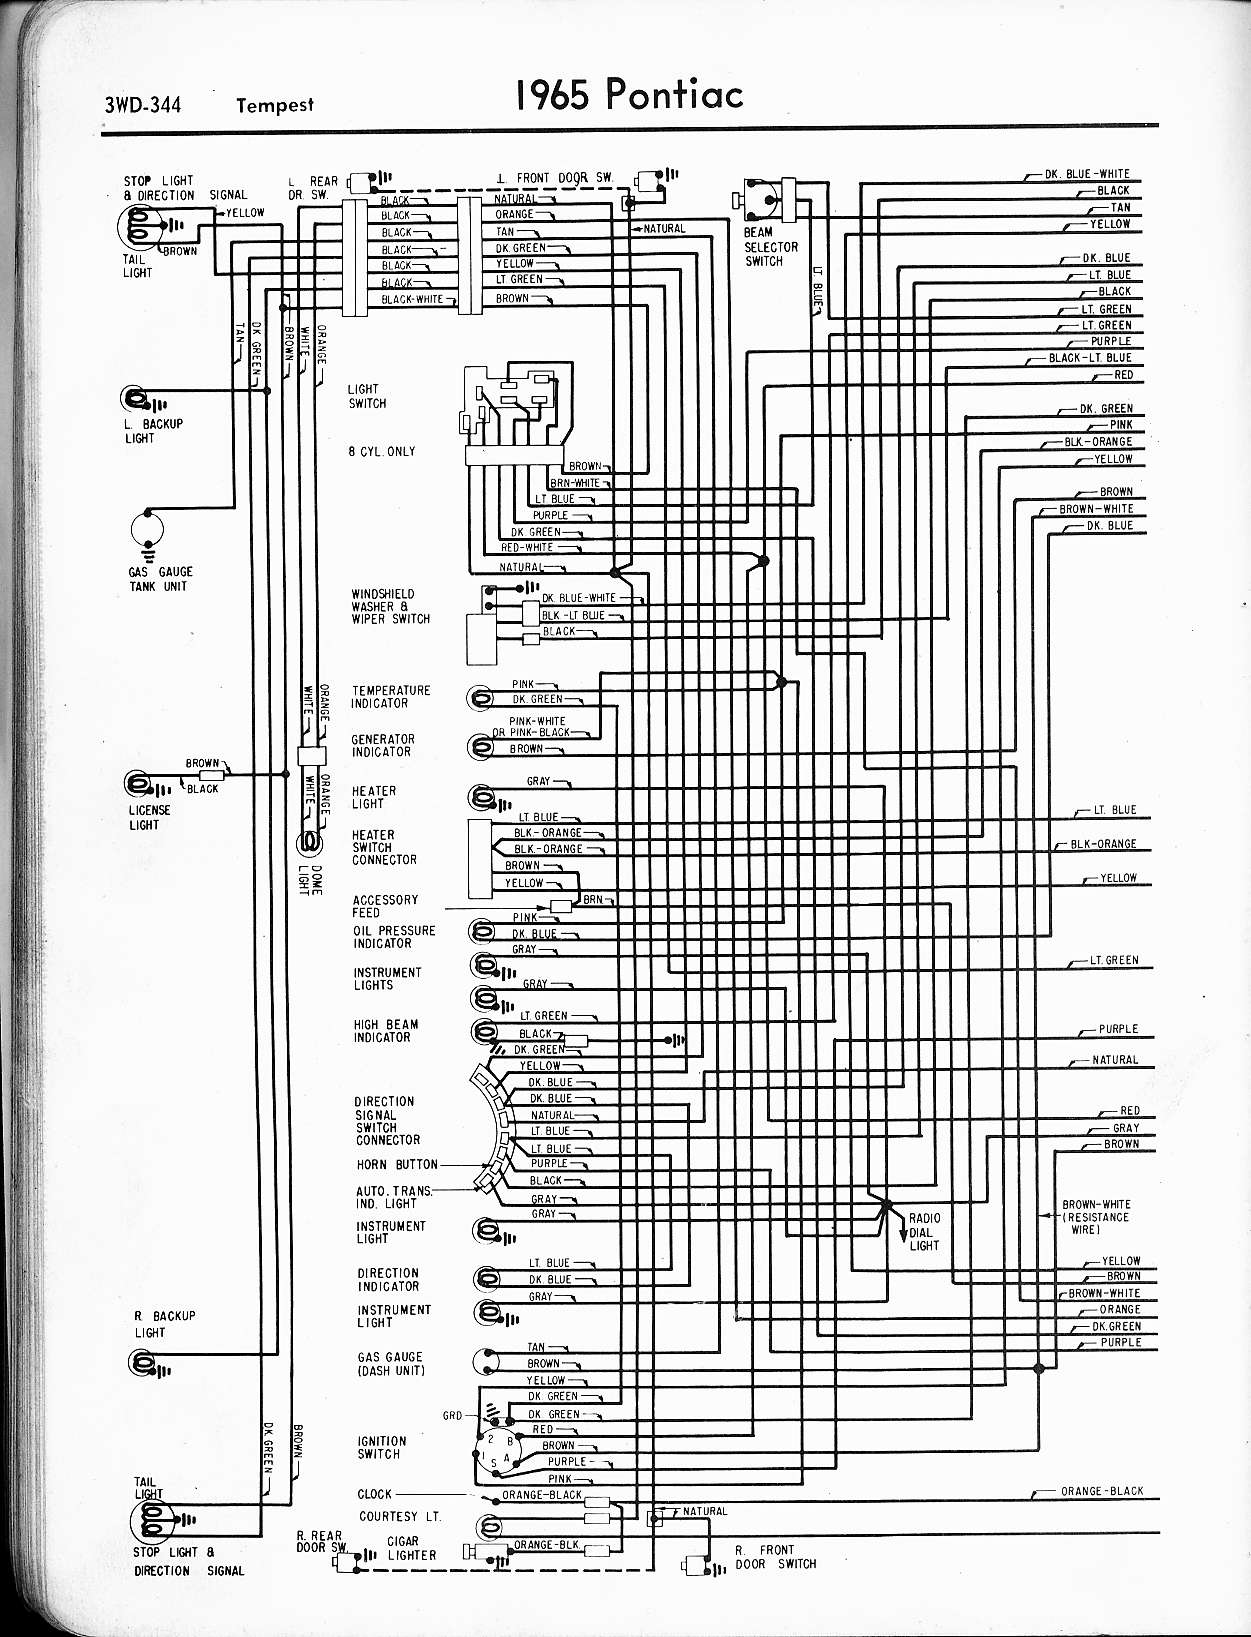 66 mustang ignition wiring diagram for parrot ck3100 wallace racing diagrams 1965 tempest left page